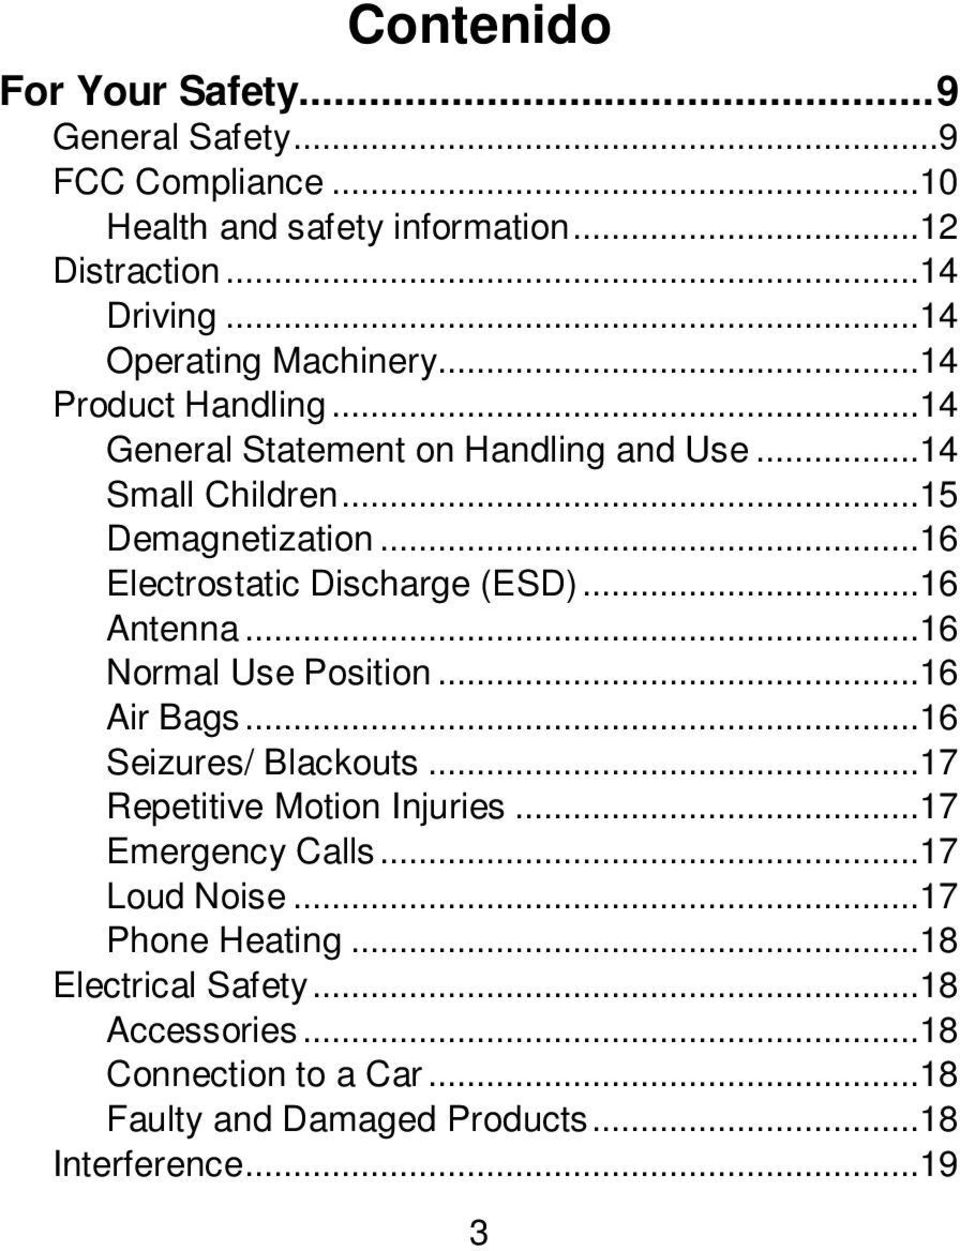 ..16 Electrostatic Discharge (ESD)...16 Antenna...16 Normal Use Position...16 Air Bags...16 Seizures/ Blackouts...17 Repetitive Motion Injuries.